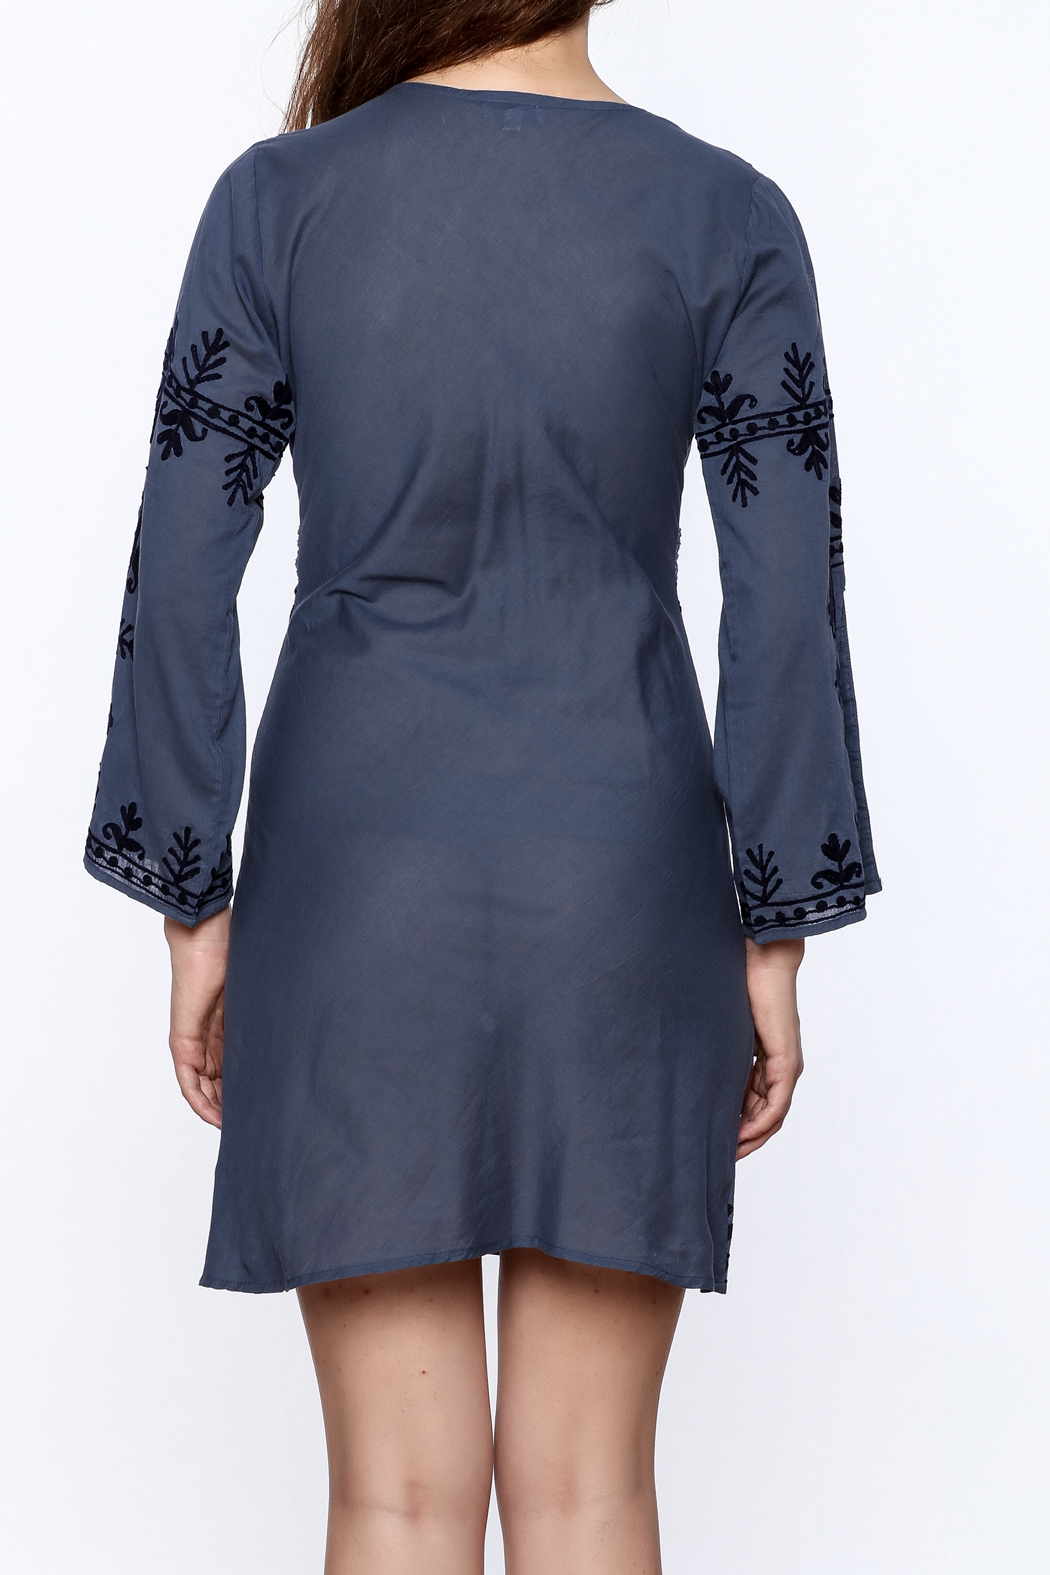 Debbie Katz Blue Embroidered Dress - Back Cropped Image